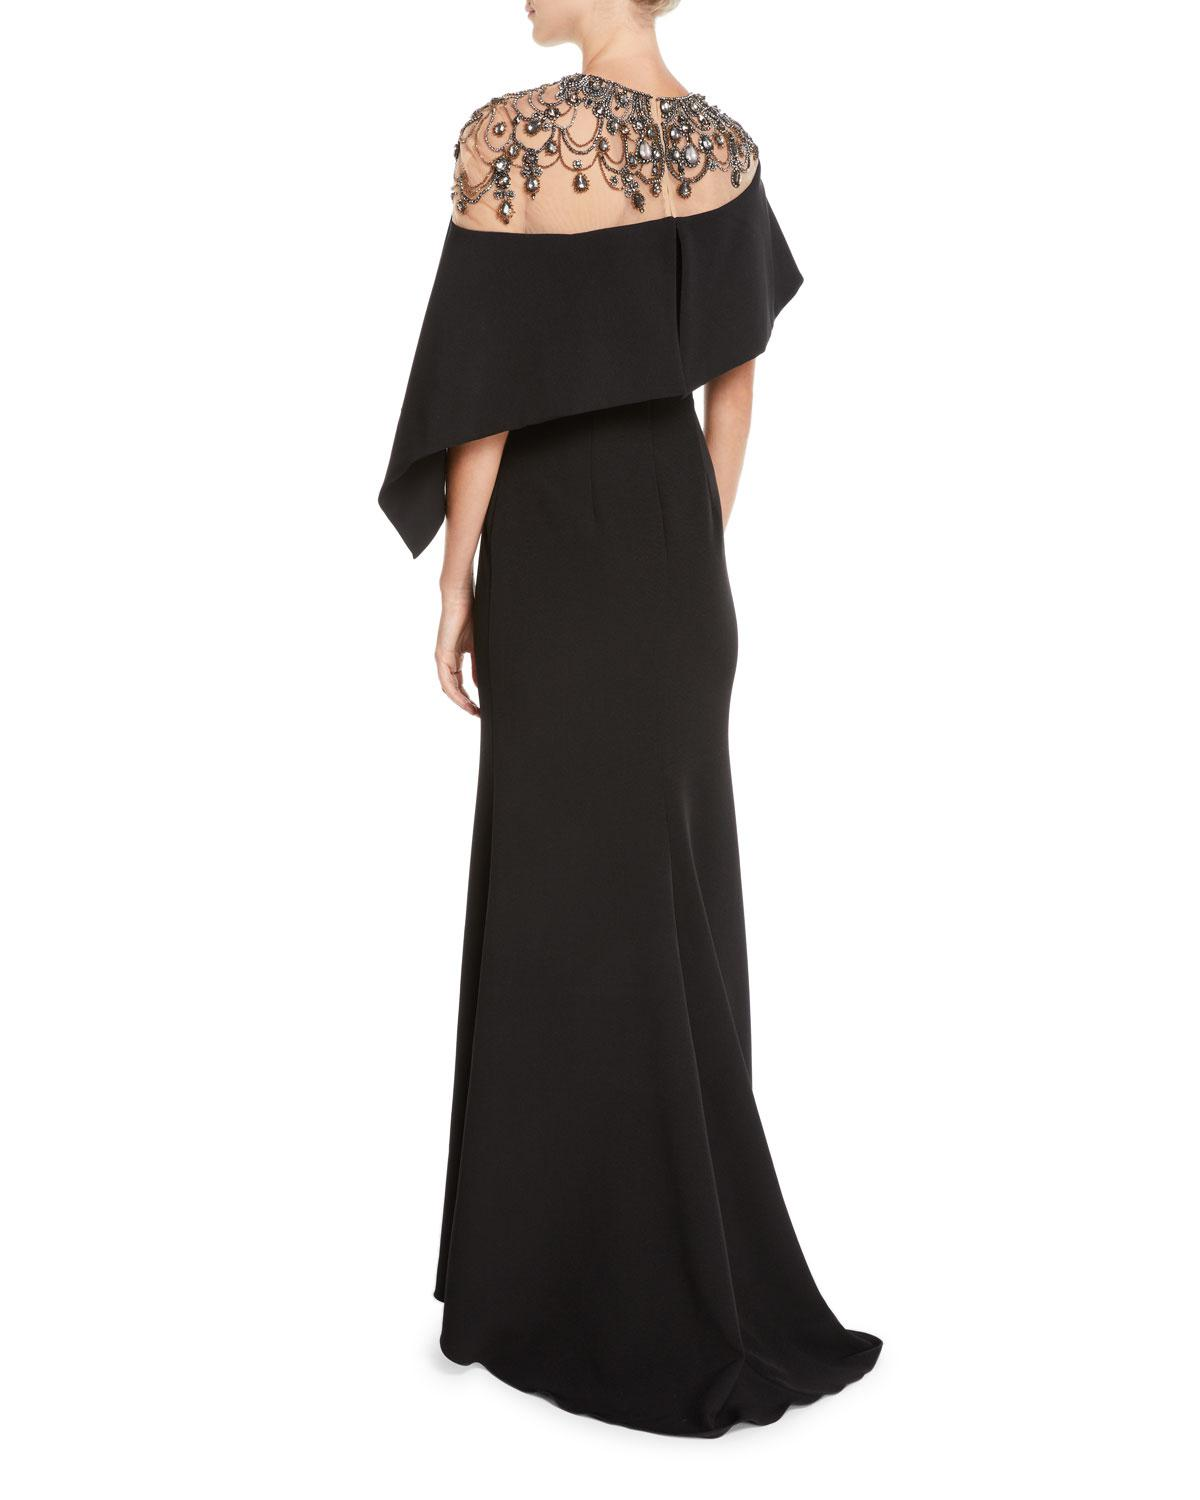 Lyst - Badgley Mischka Jewel-embroidered Asymmetric-cape A-line ...